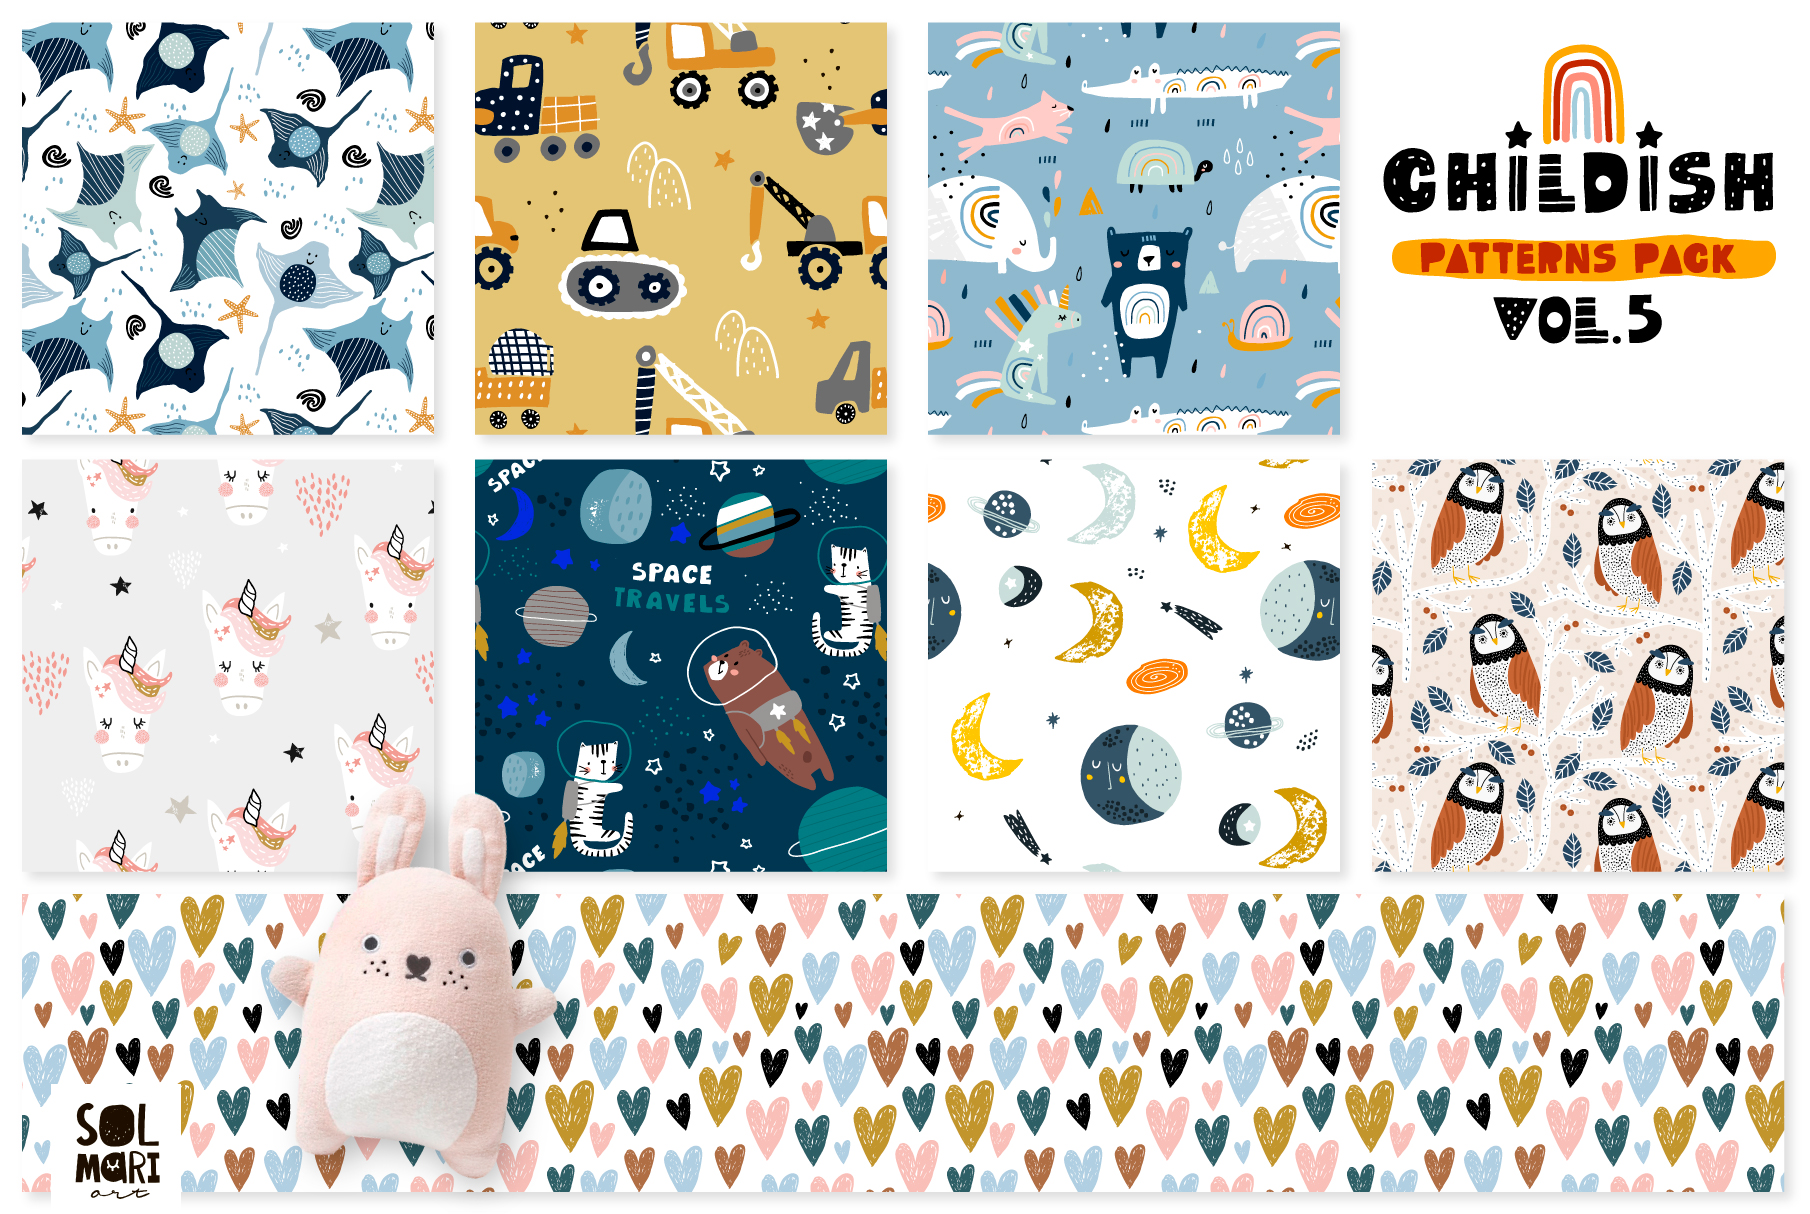 Childish patterns pack vol. 5 example image 4